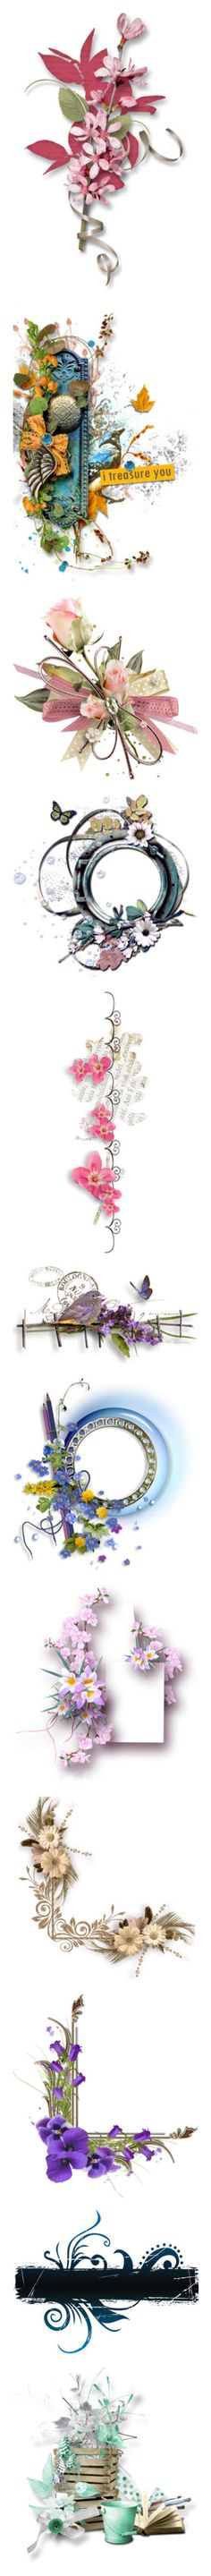 """doll background x 3"" by loves-elephants ❤ liked on Polyvore featuring flowers, clusters, filler, backgrounds, floral, embellishment, borders, detail, picture frame and frame"